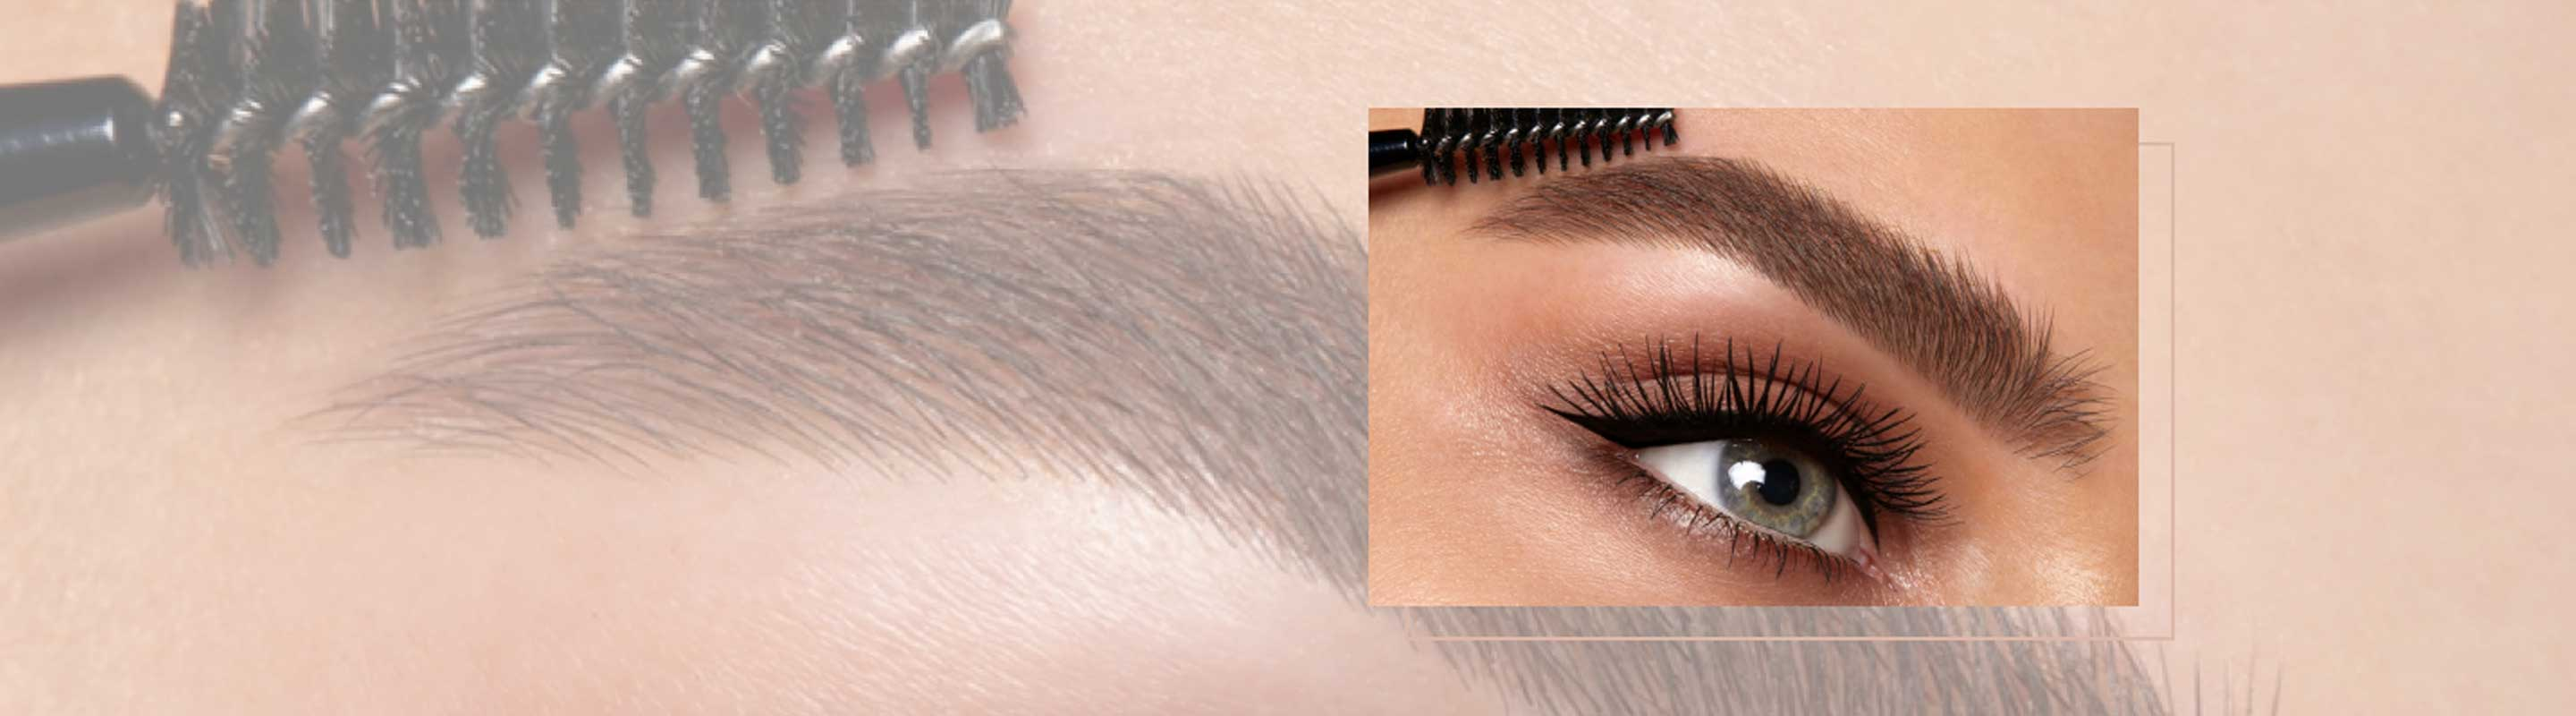 Brushed Up Eyebrows How To Official Hd Brows